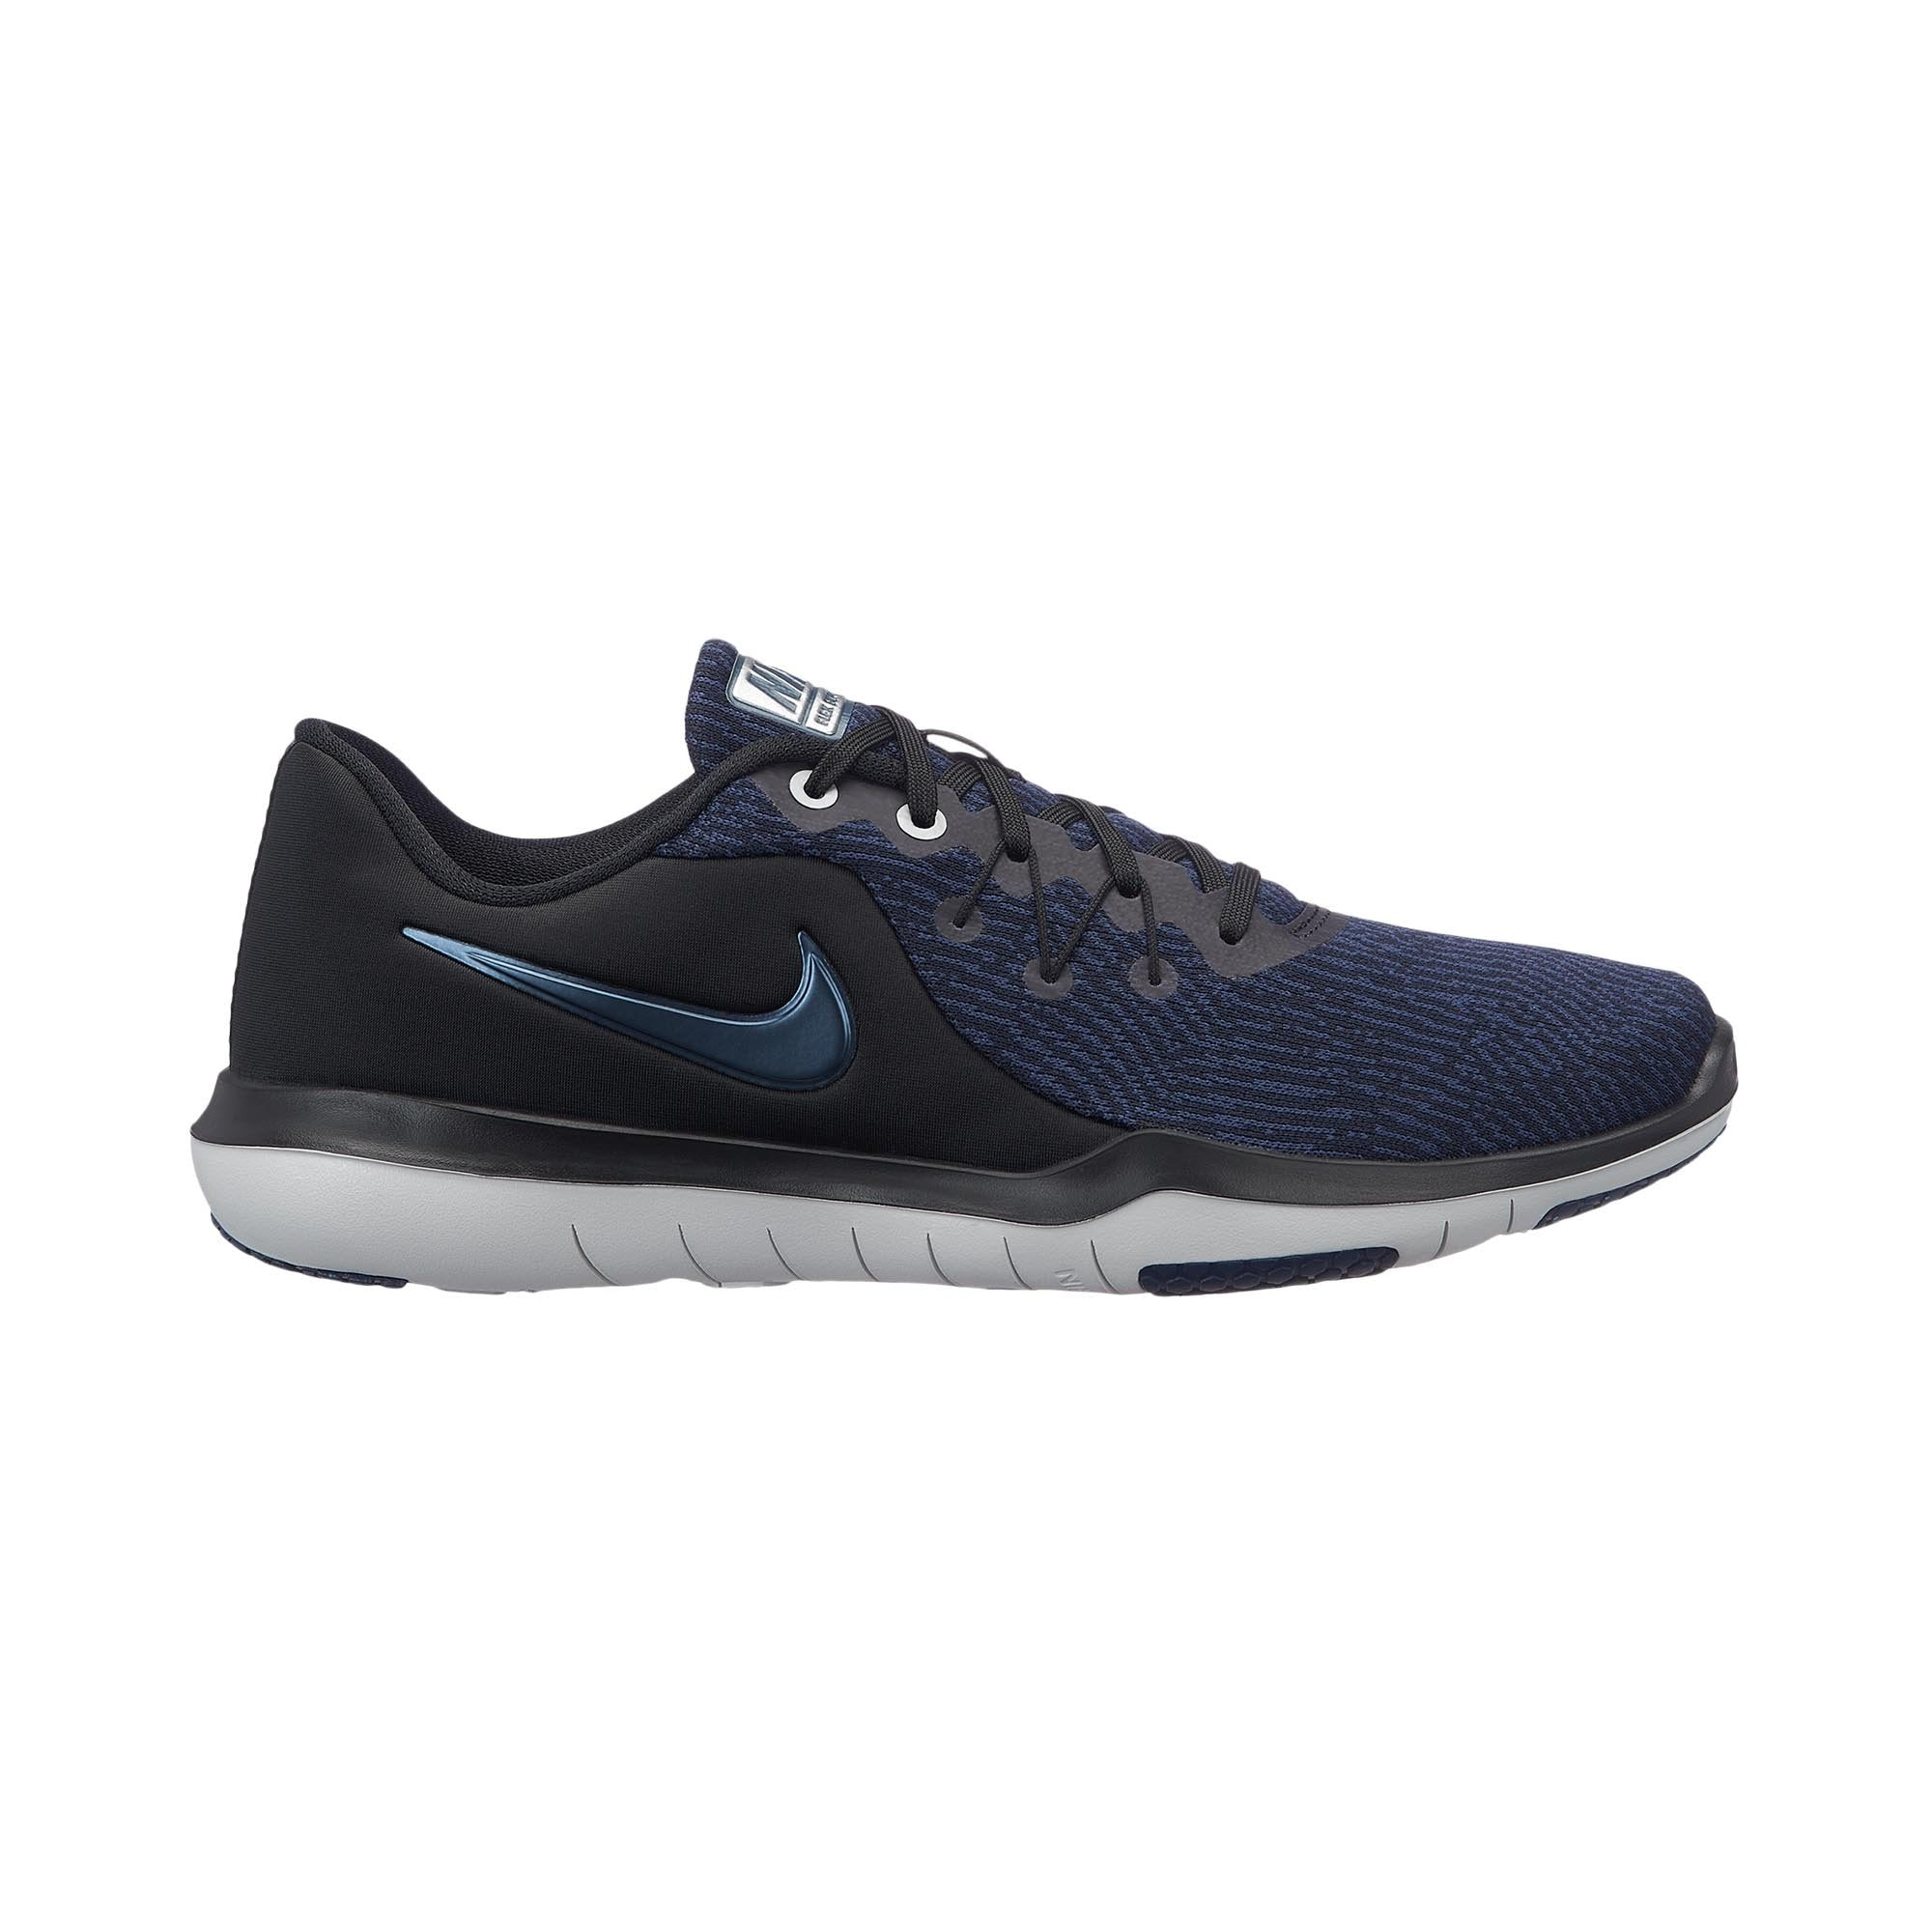 cac20196129b Buy NIKE Women Flex Supreme Tr 6 Premium Training Shoes